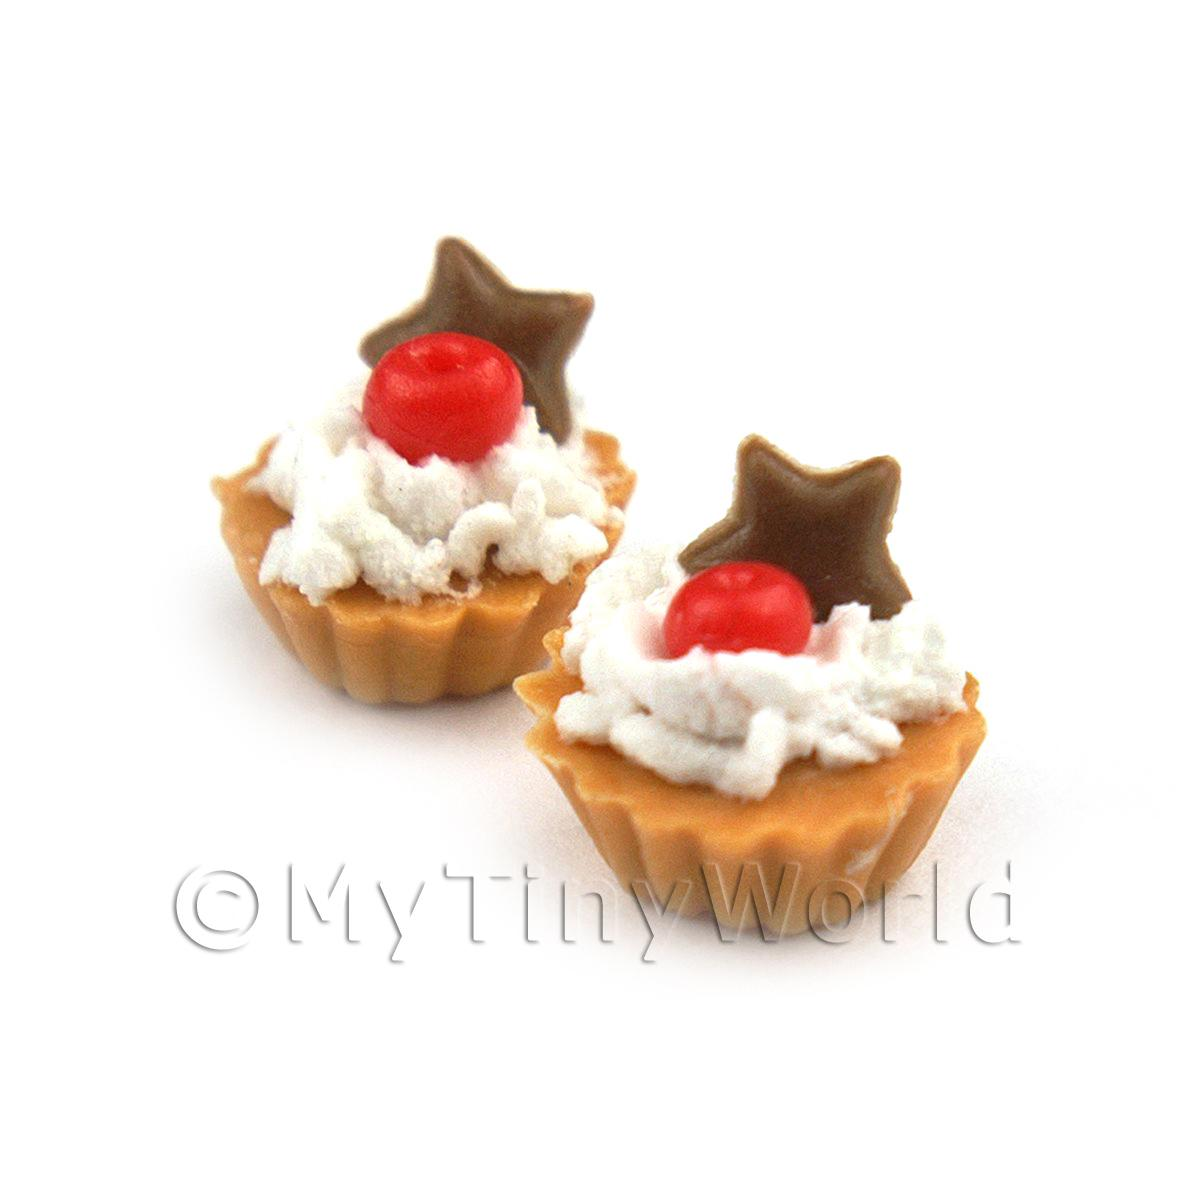 Dolls House Miniature Loose Handmade Cherry and Chocolate Star Tart